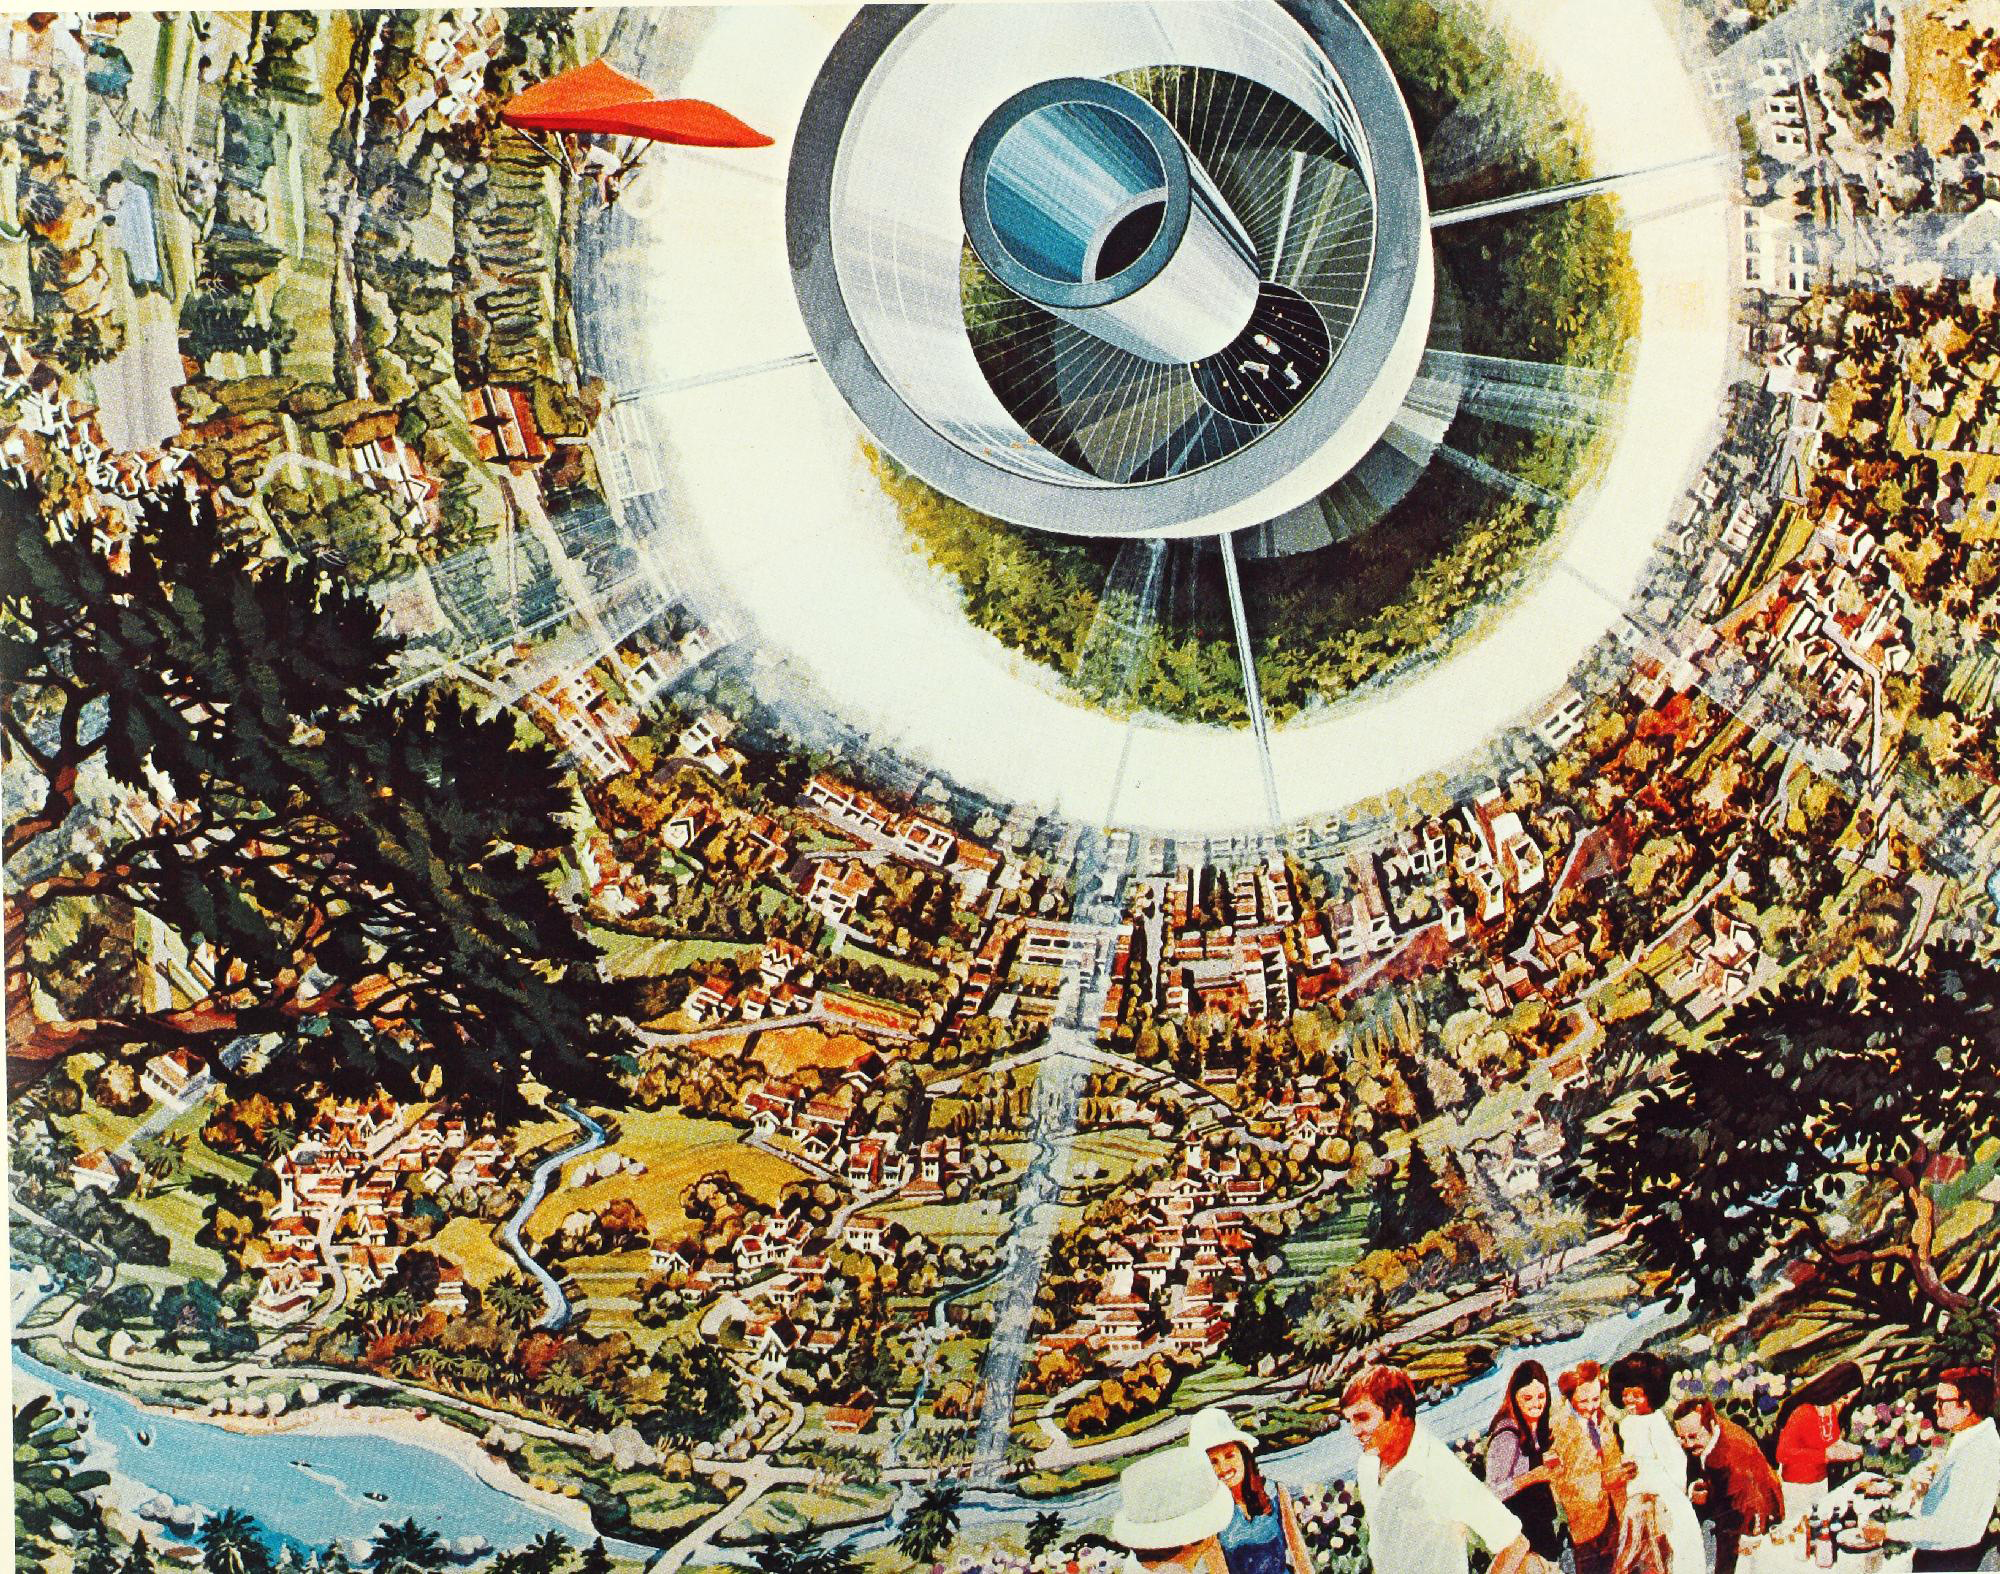 The secret space programs may have well already constructed space colonies of this technological magnitude throughout our solar system and beyond.